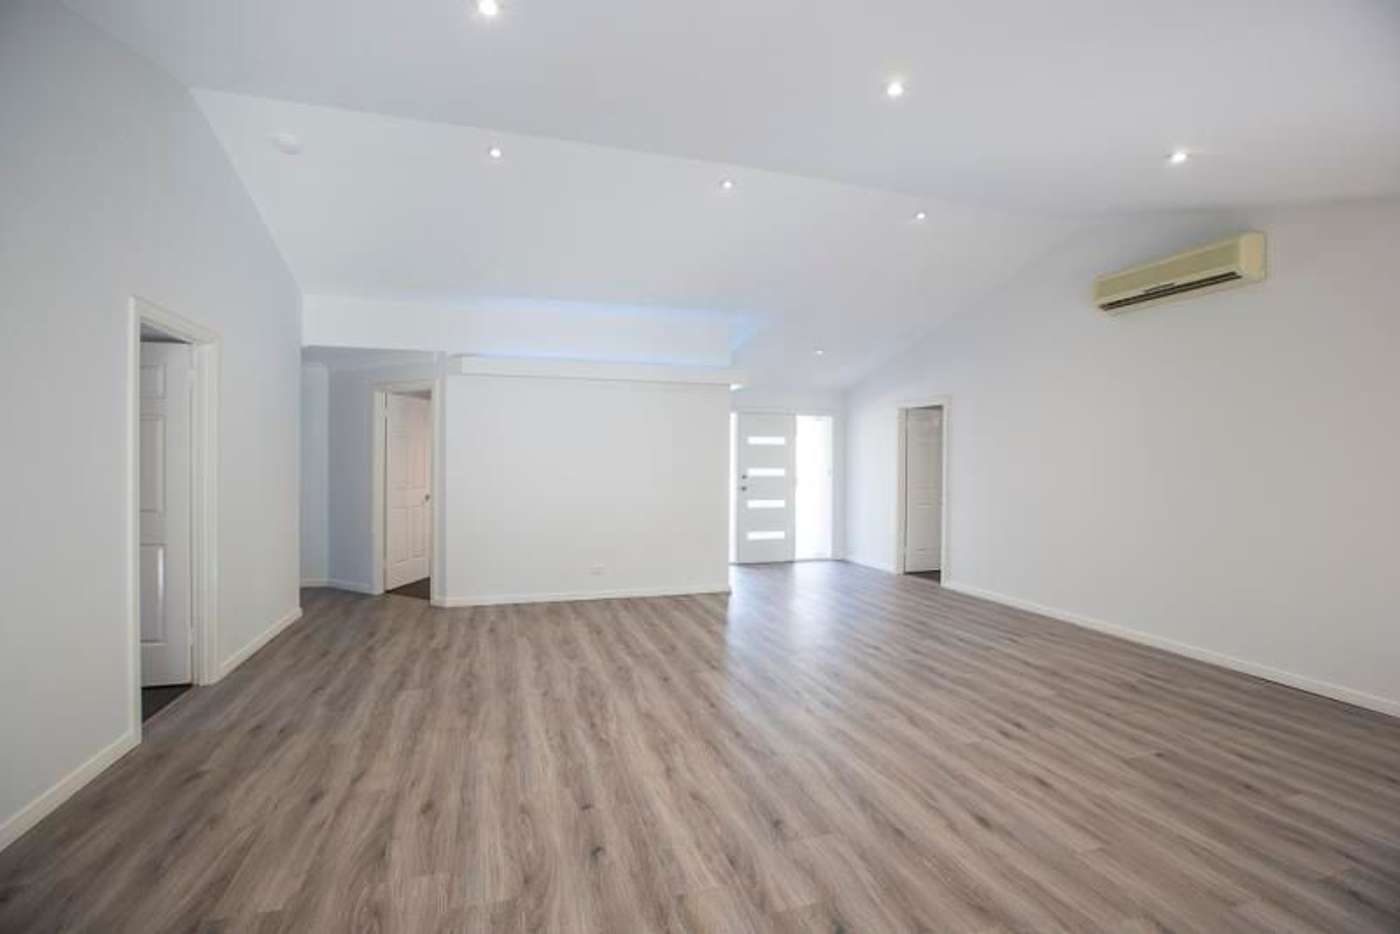 Sixth view of Homely house listing, 32 Ballybunion Drive, Parkwood QLD 4214